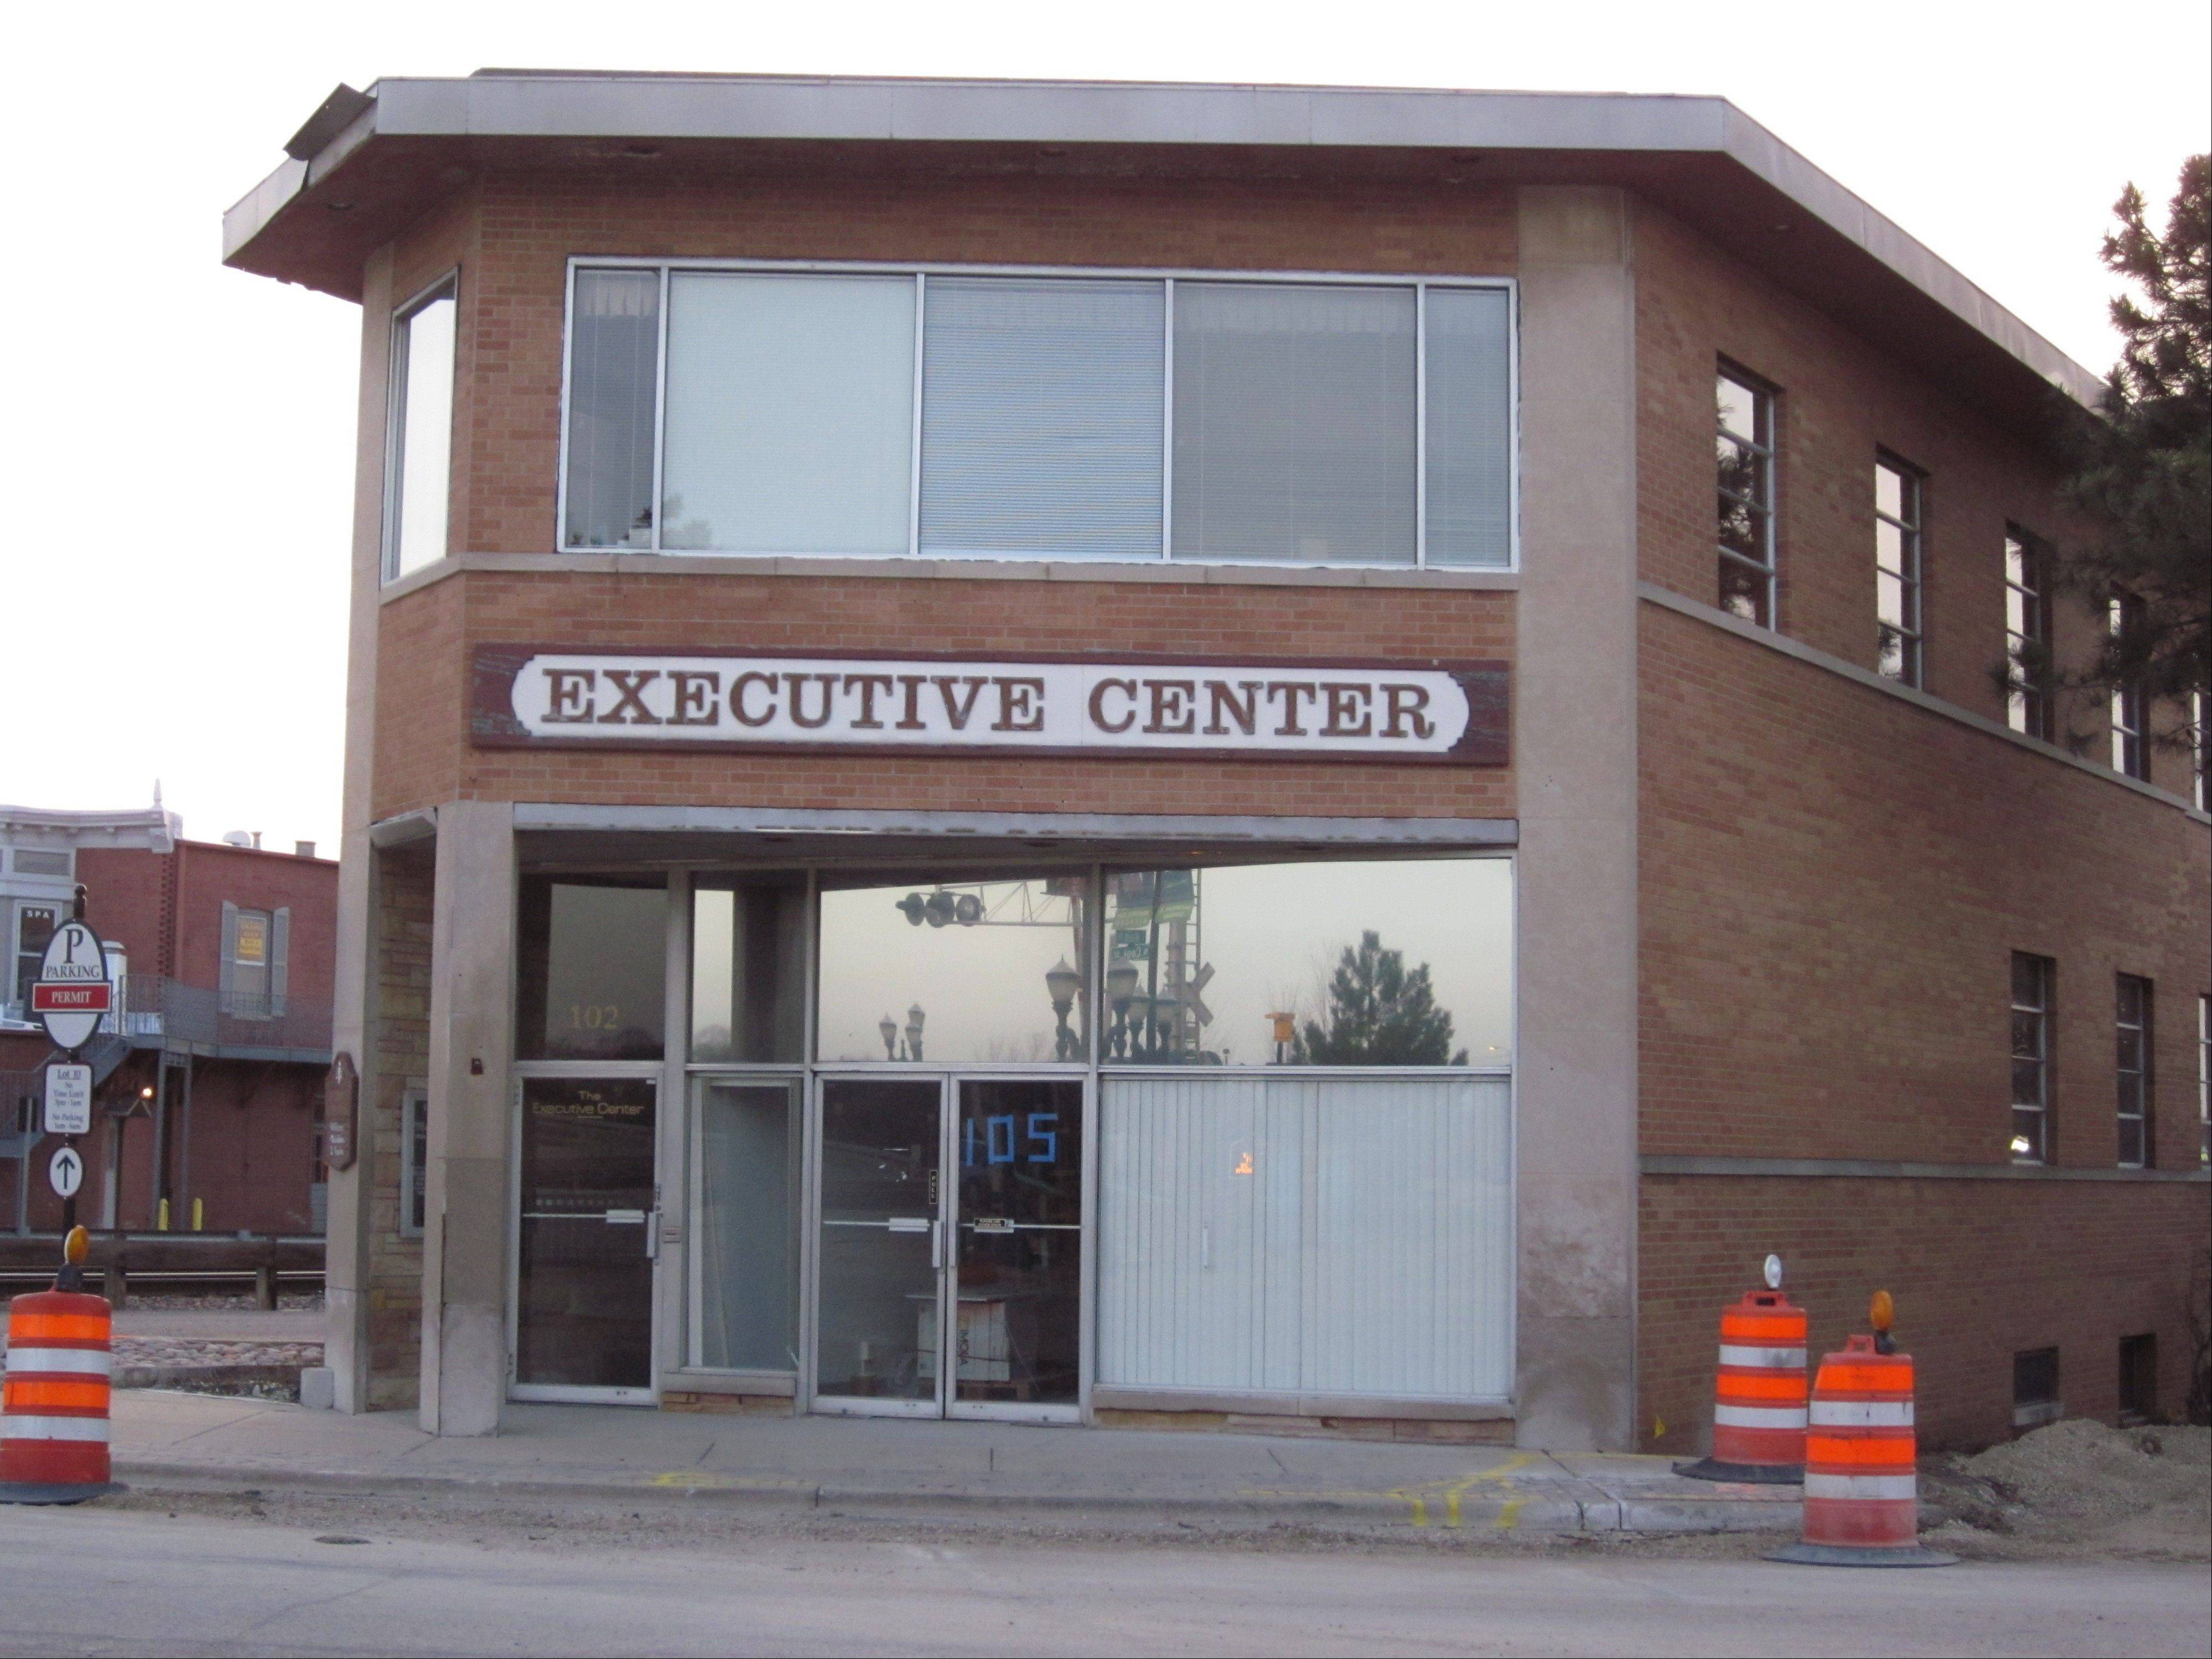 The vacant space at the Executive Center building at the northwest corner of Cook and Main streets in downtown Barrington is expected to be the Tip Top Tap by late May. The bar will serve primarily as a waiting area for the nearby Ciao Baby! restaurant.